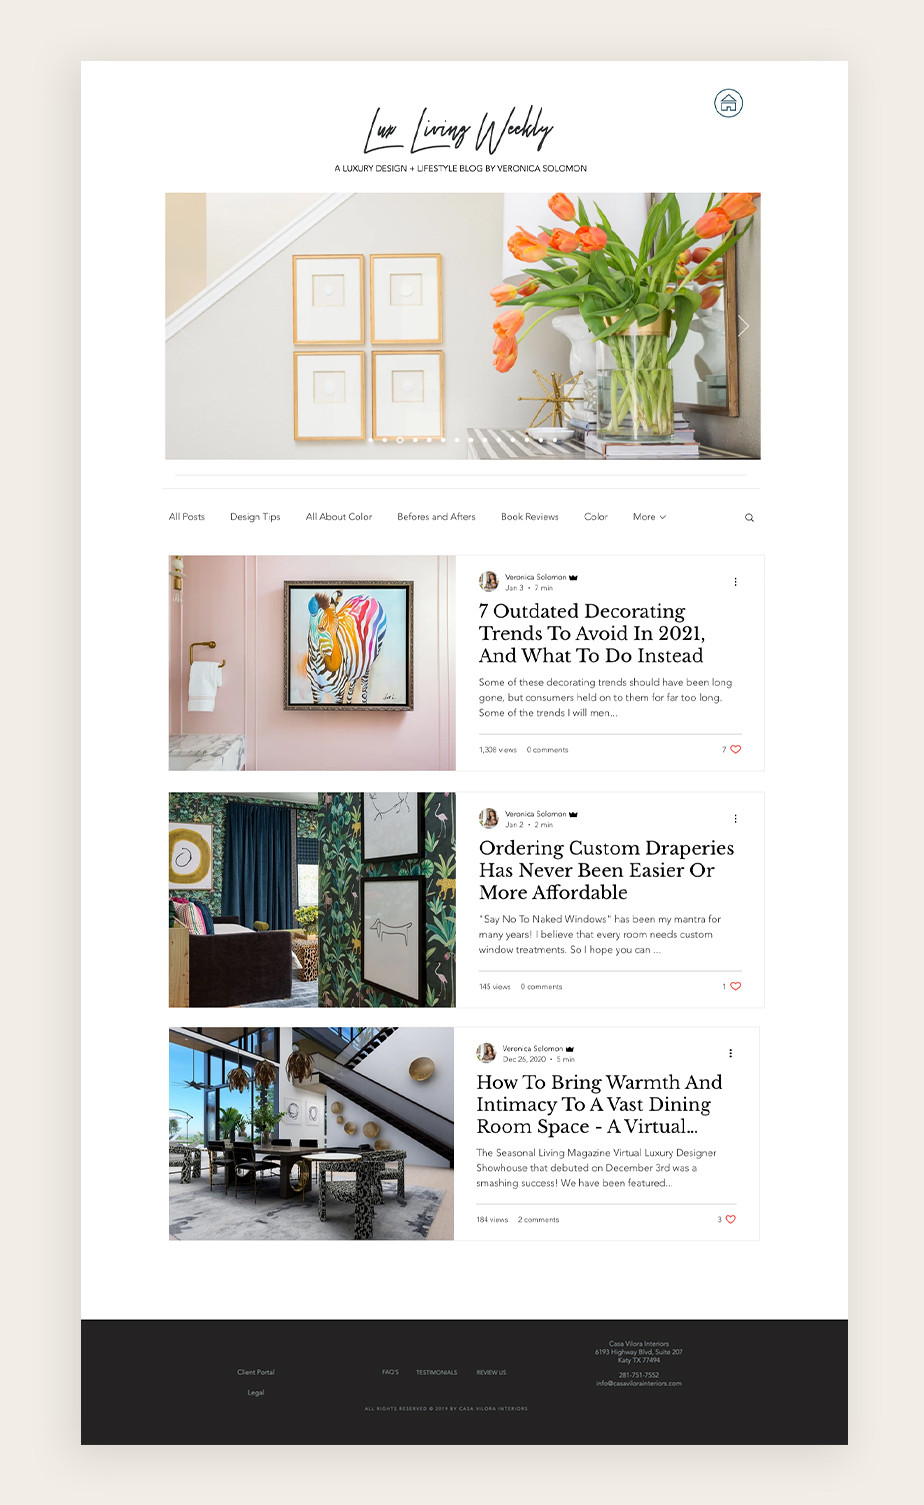 Interior design blog made by Lux Living Weekly